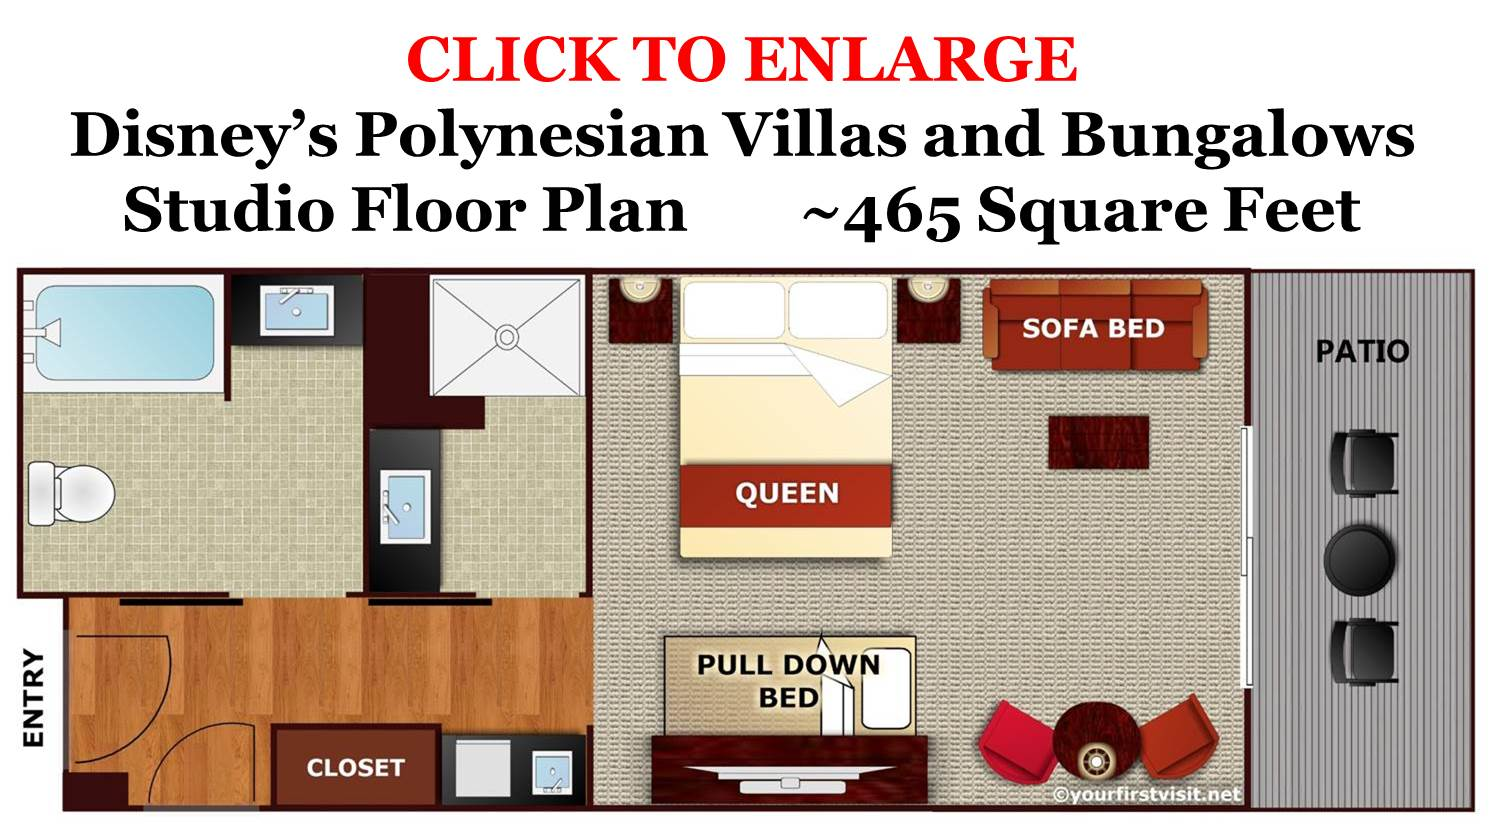 Studio Floor Plan - Disney's Polynesian Villas and Bungalows from yourfirstvisit.net